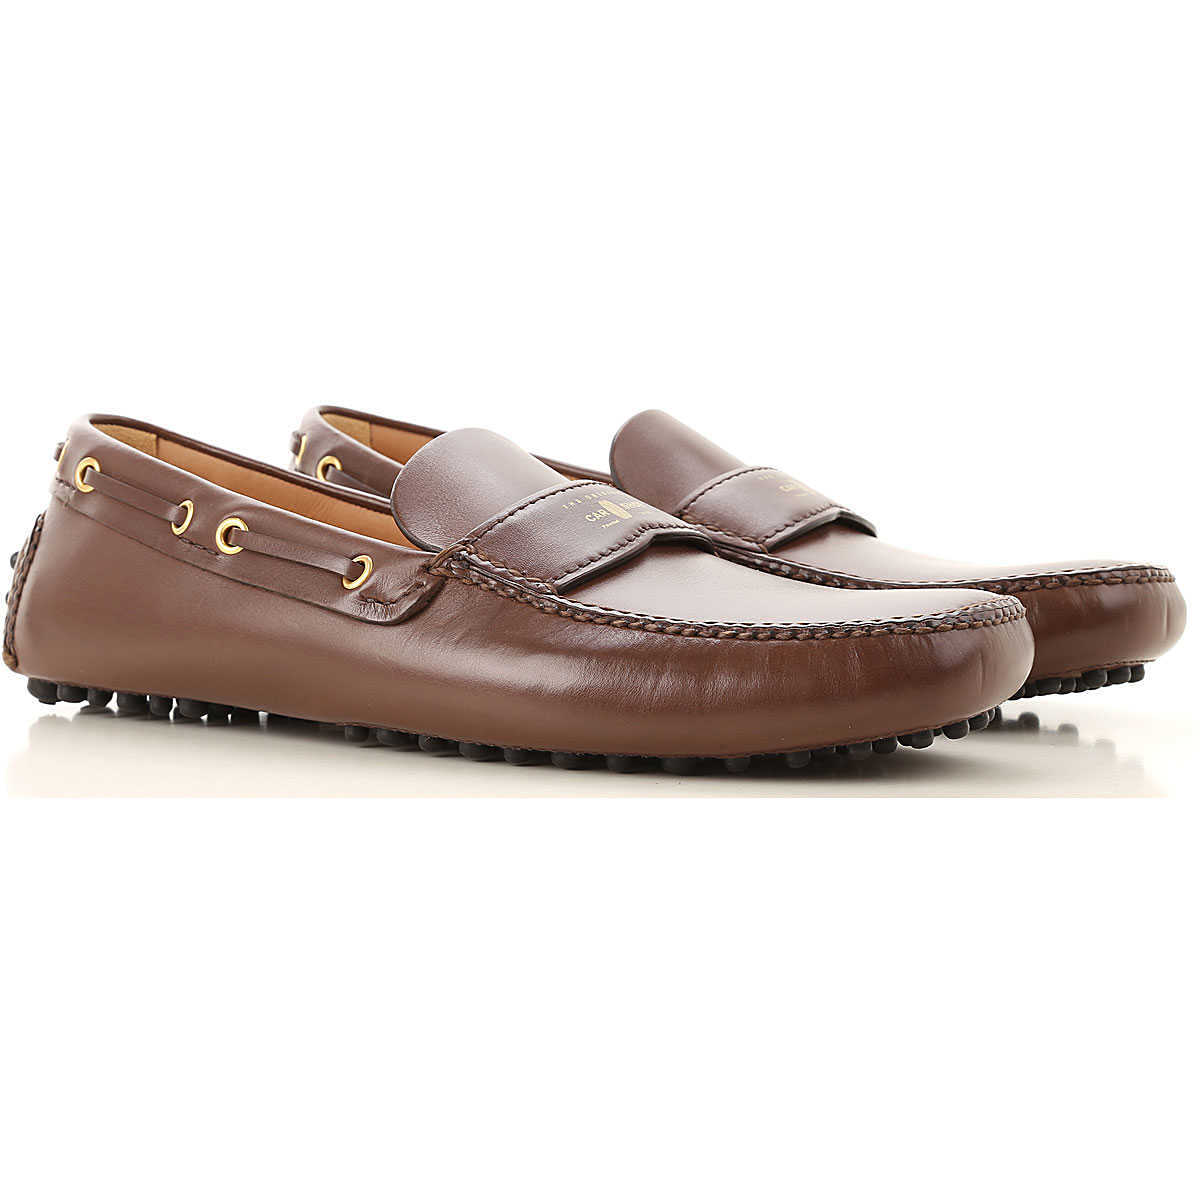 Car Shoe Loafers for Men On Sale in Outlet Brown - GOOFASH